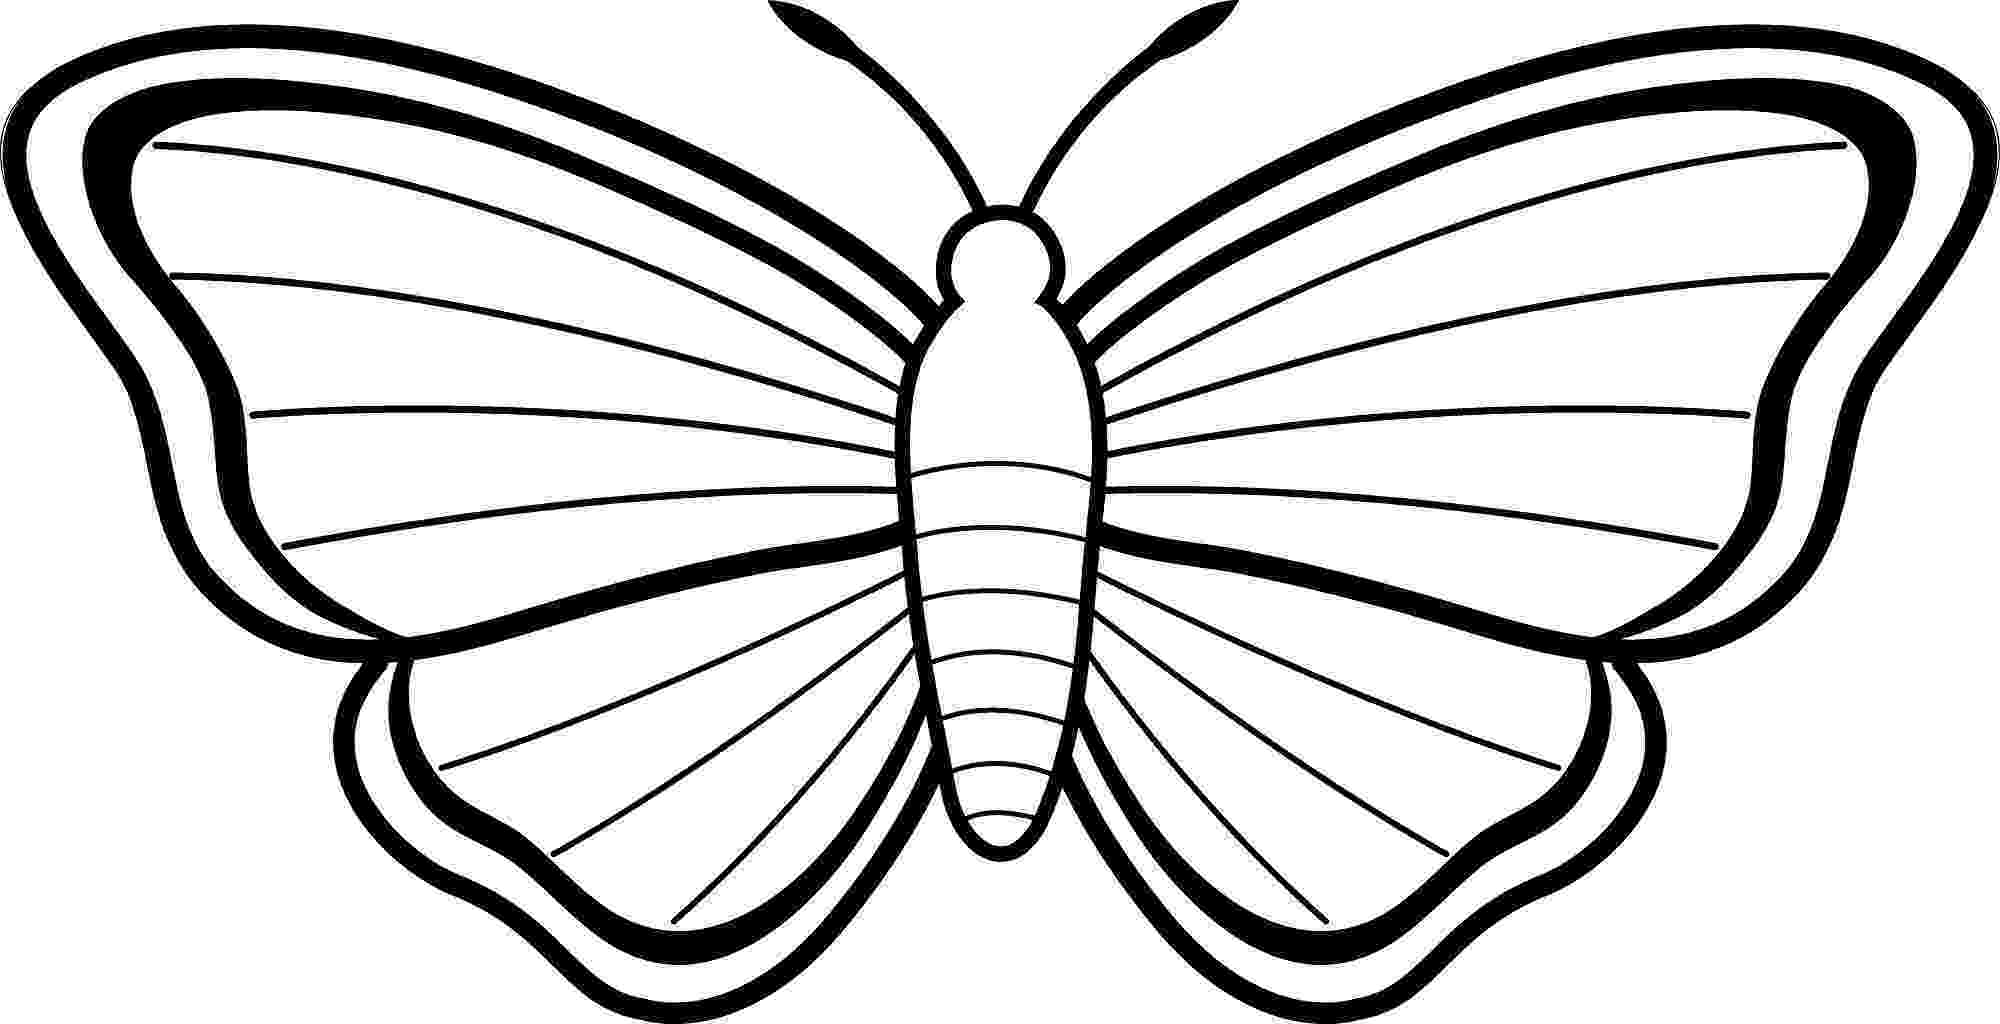 butterfly coloring sheets free printables free printable butterfly coloring pages for kids butterfly coloring printables sheets free